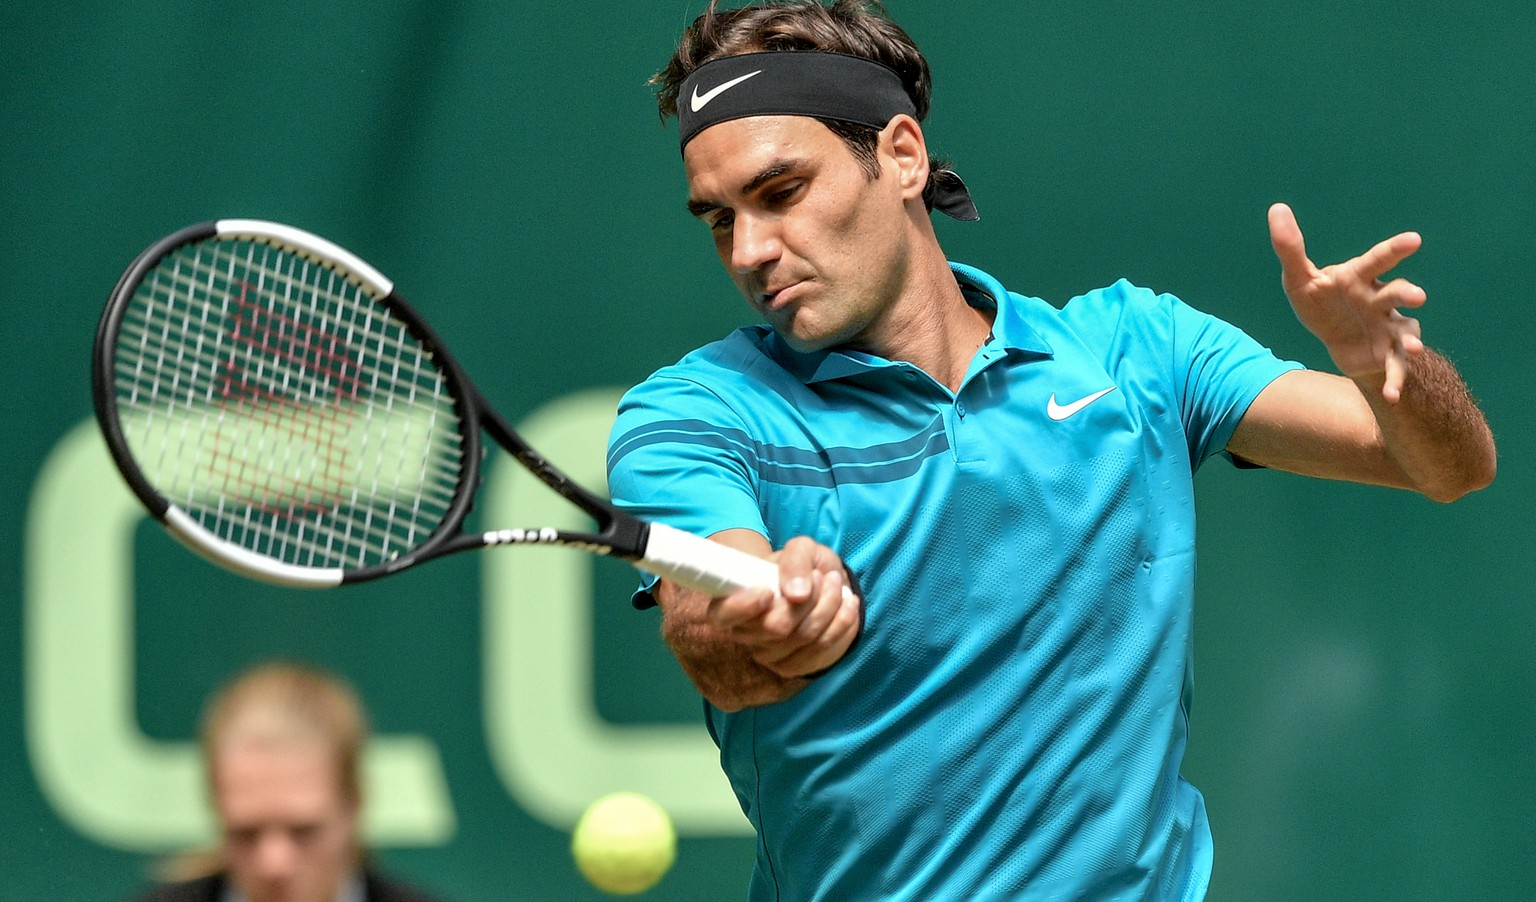 epa06830617 Roger Federer of Switzerland in action during his quarter final match against Matthew Ebden from Australia at the ATP Tennis Tournament Gerry Weber Open in Halle, Germany, 22 June 2018.  EPA/SASCHA STEINBACH